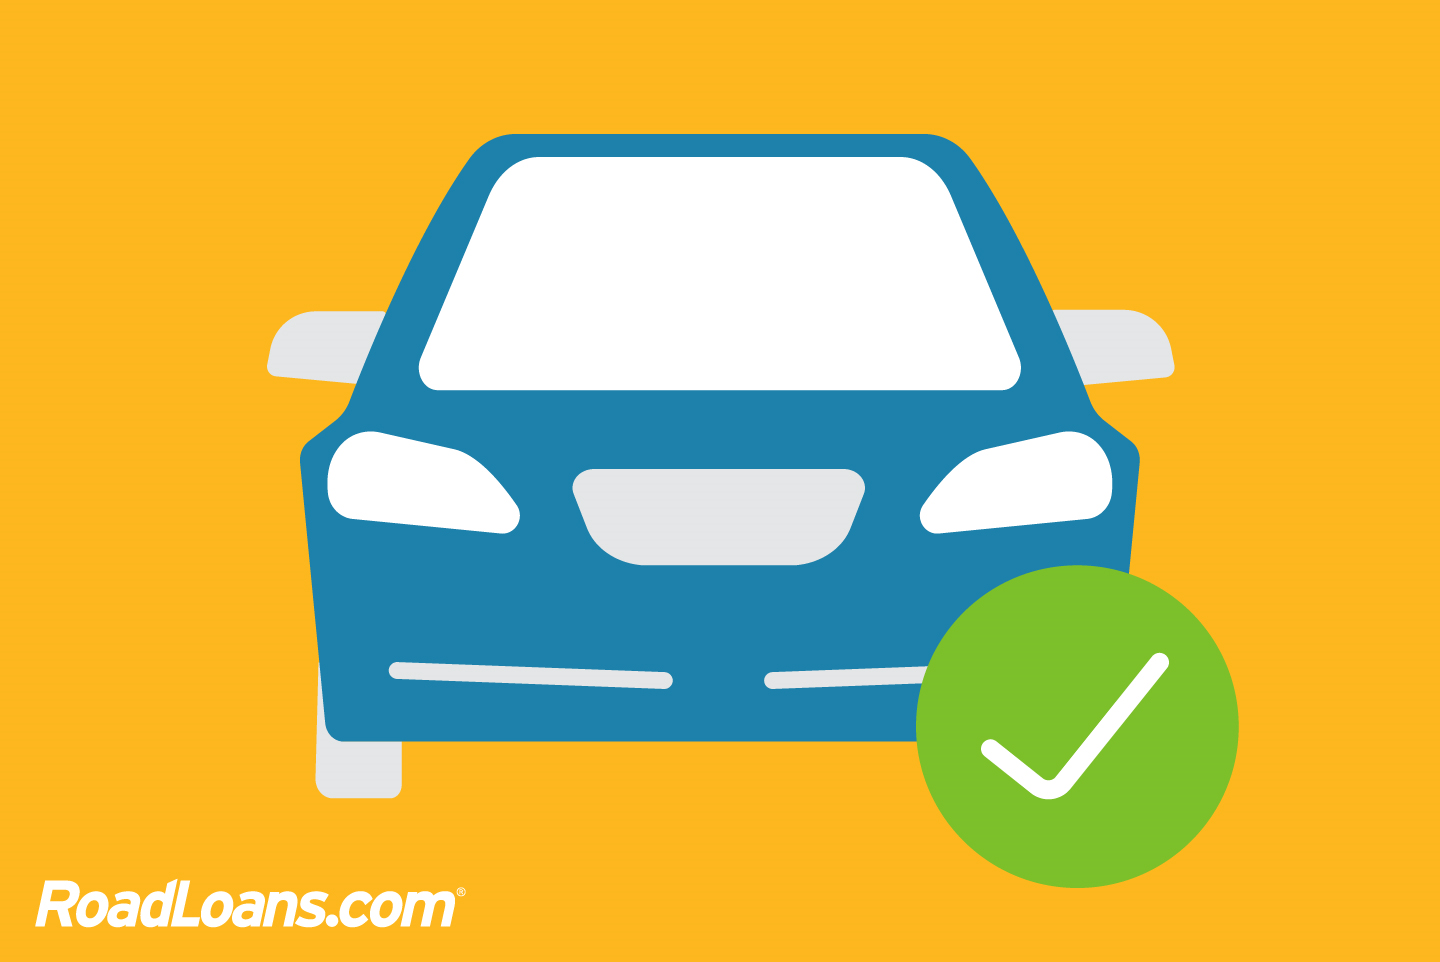 Preapproved car loans and advantages for shoppers